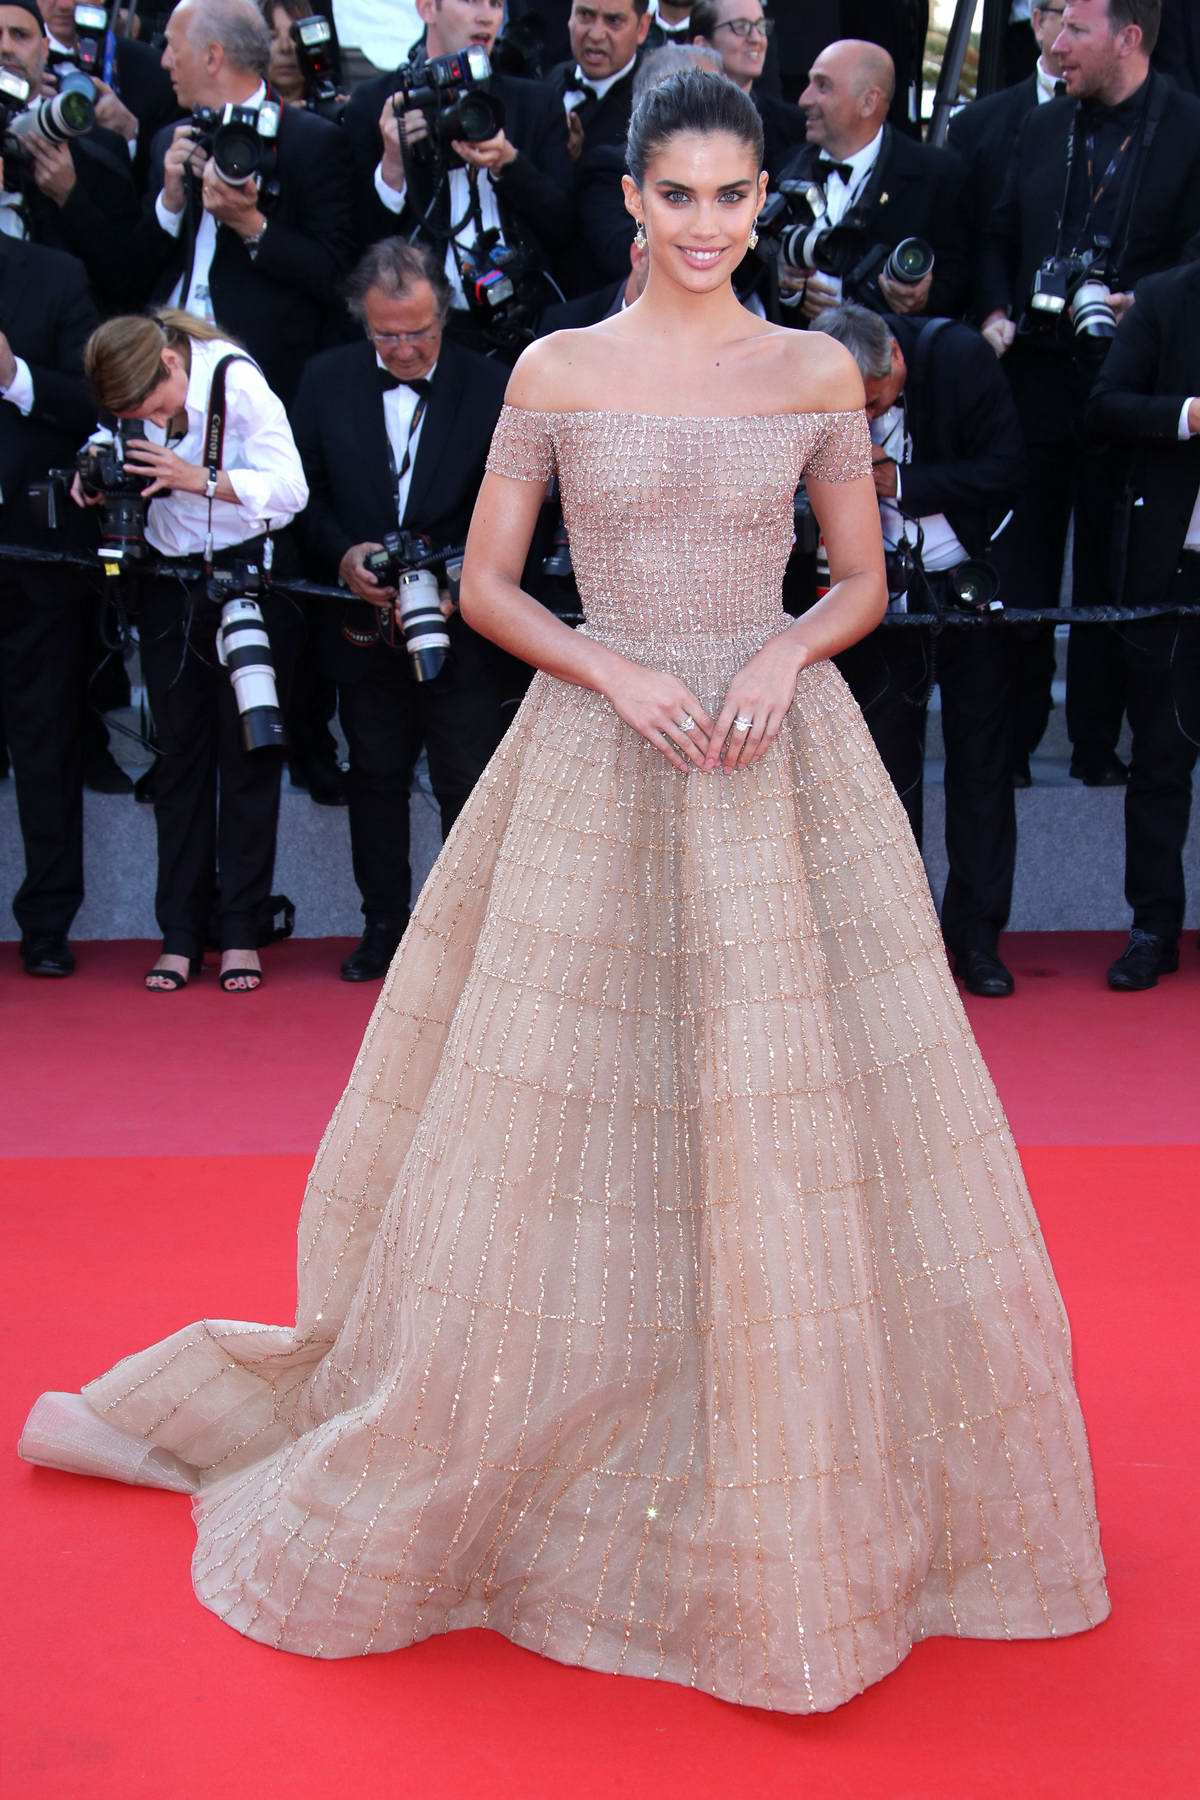 Sara Sampaio attends 'Girls Of The Sun' premiere during 71st Annual Cannes Film Festival in Cannes, France